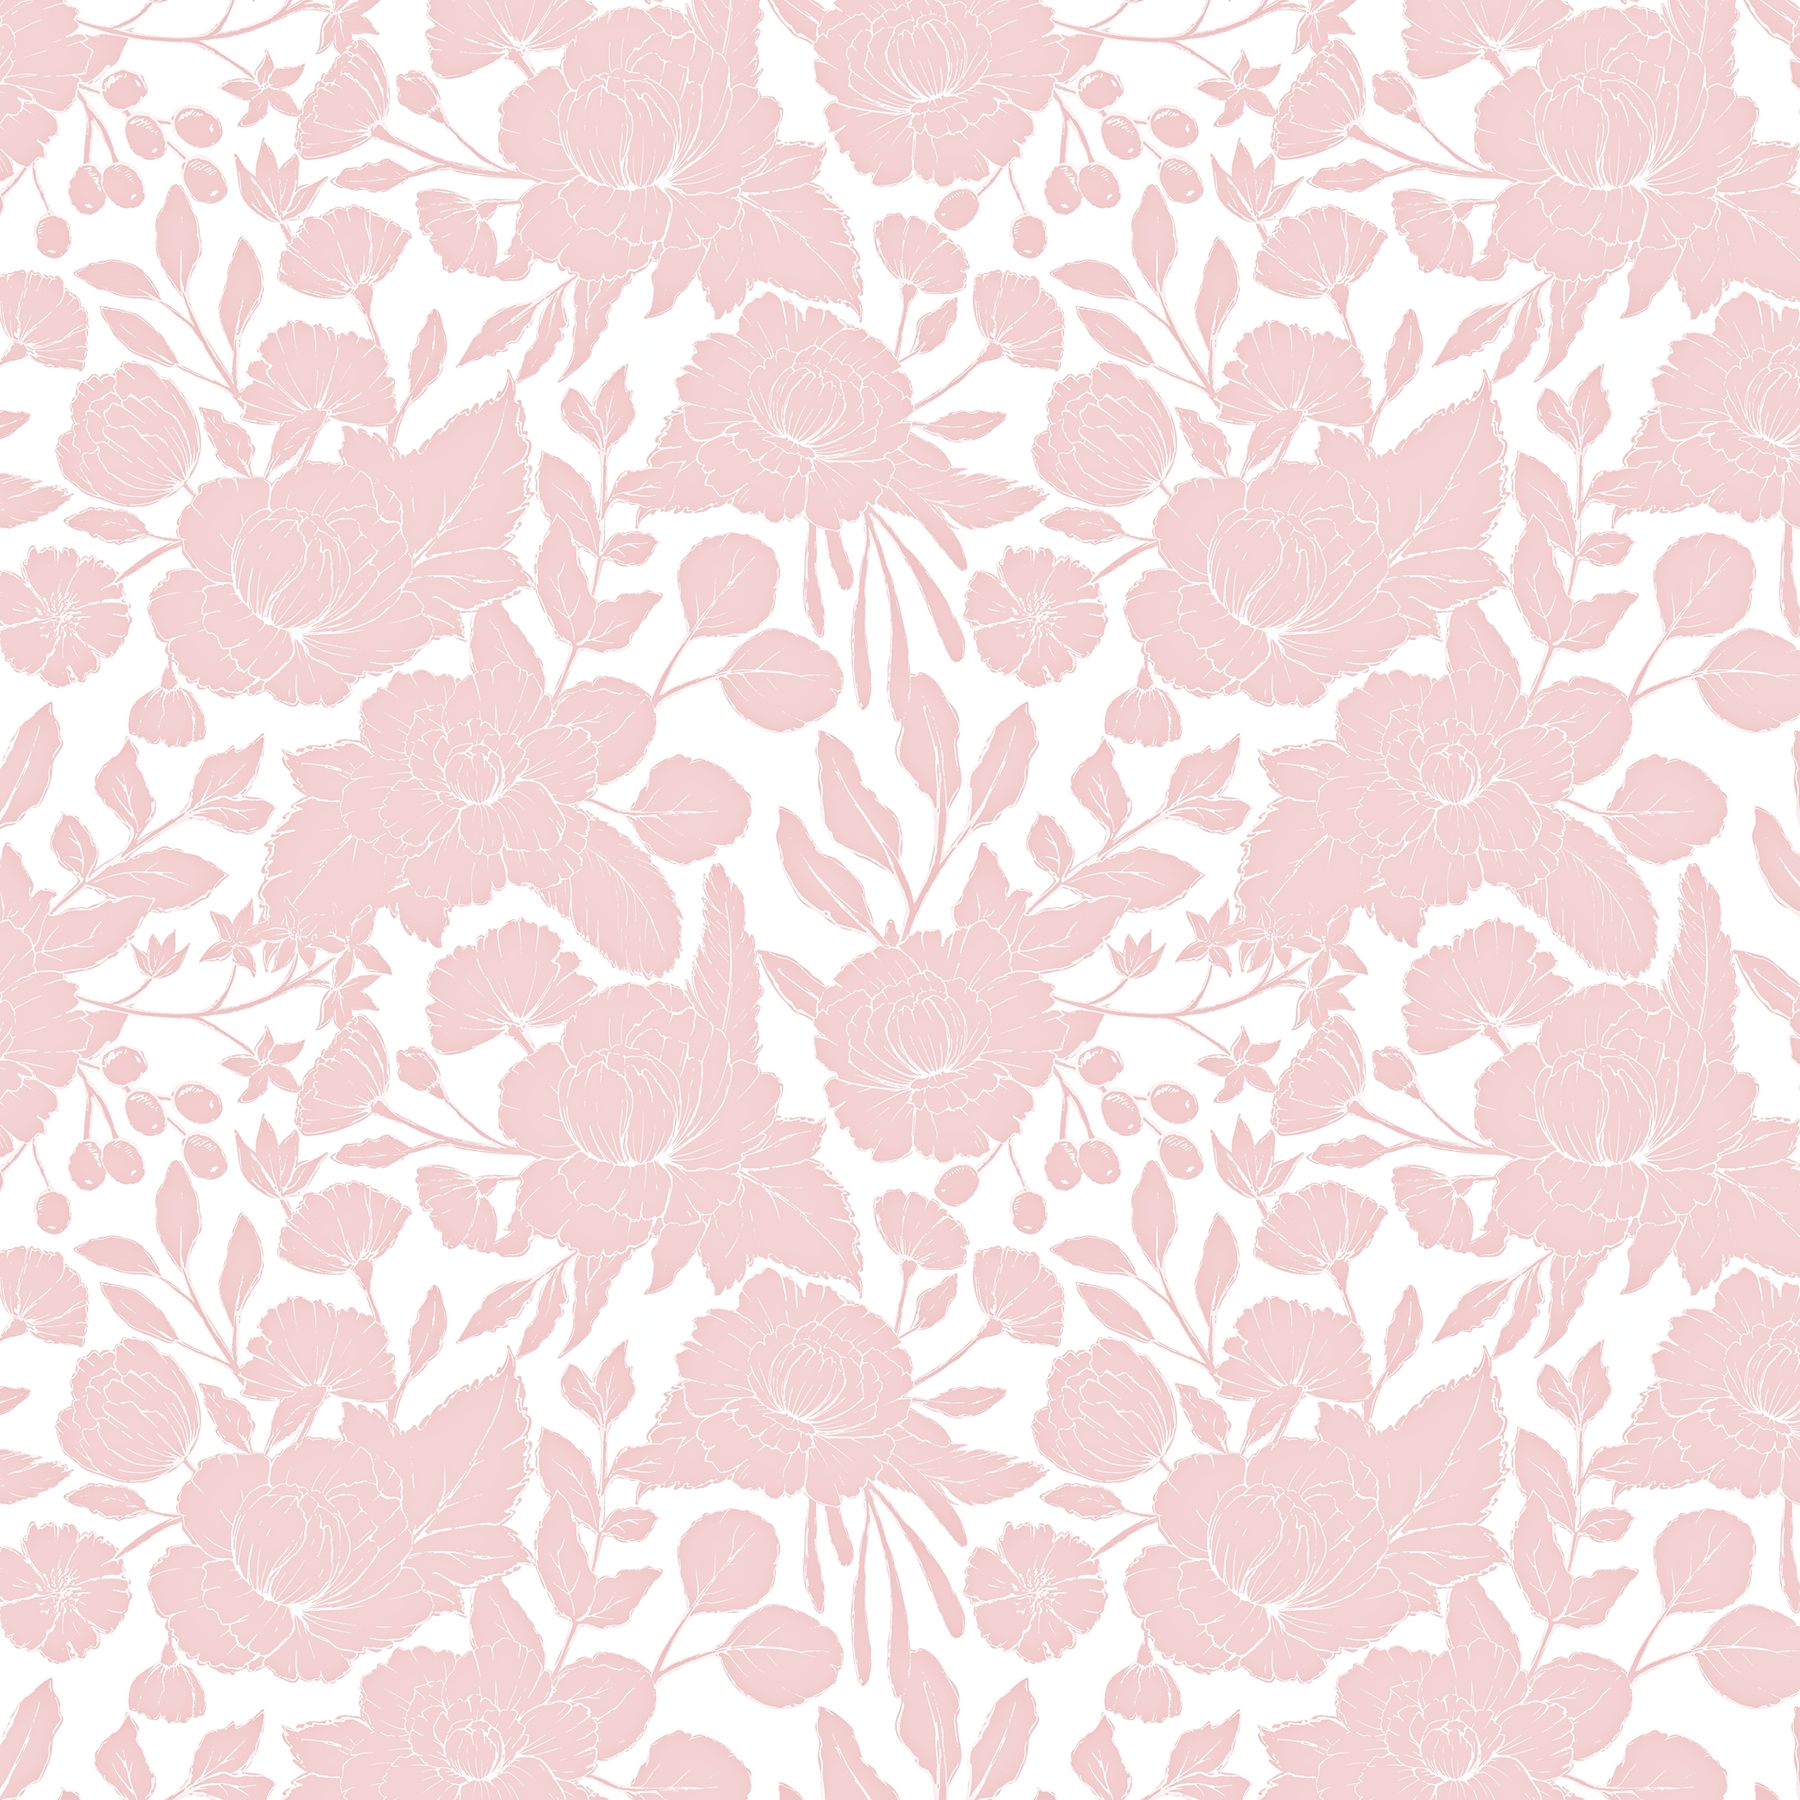 Buy Light Pink Flower Pattern Wall Mural Free Us Shipping At